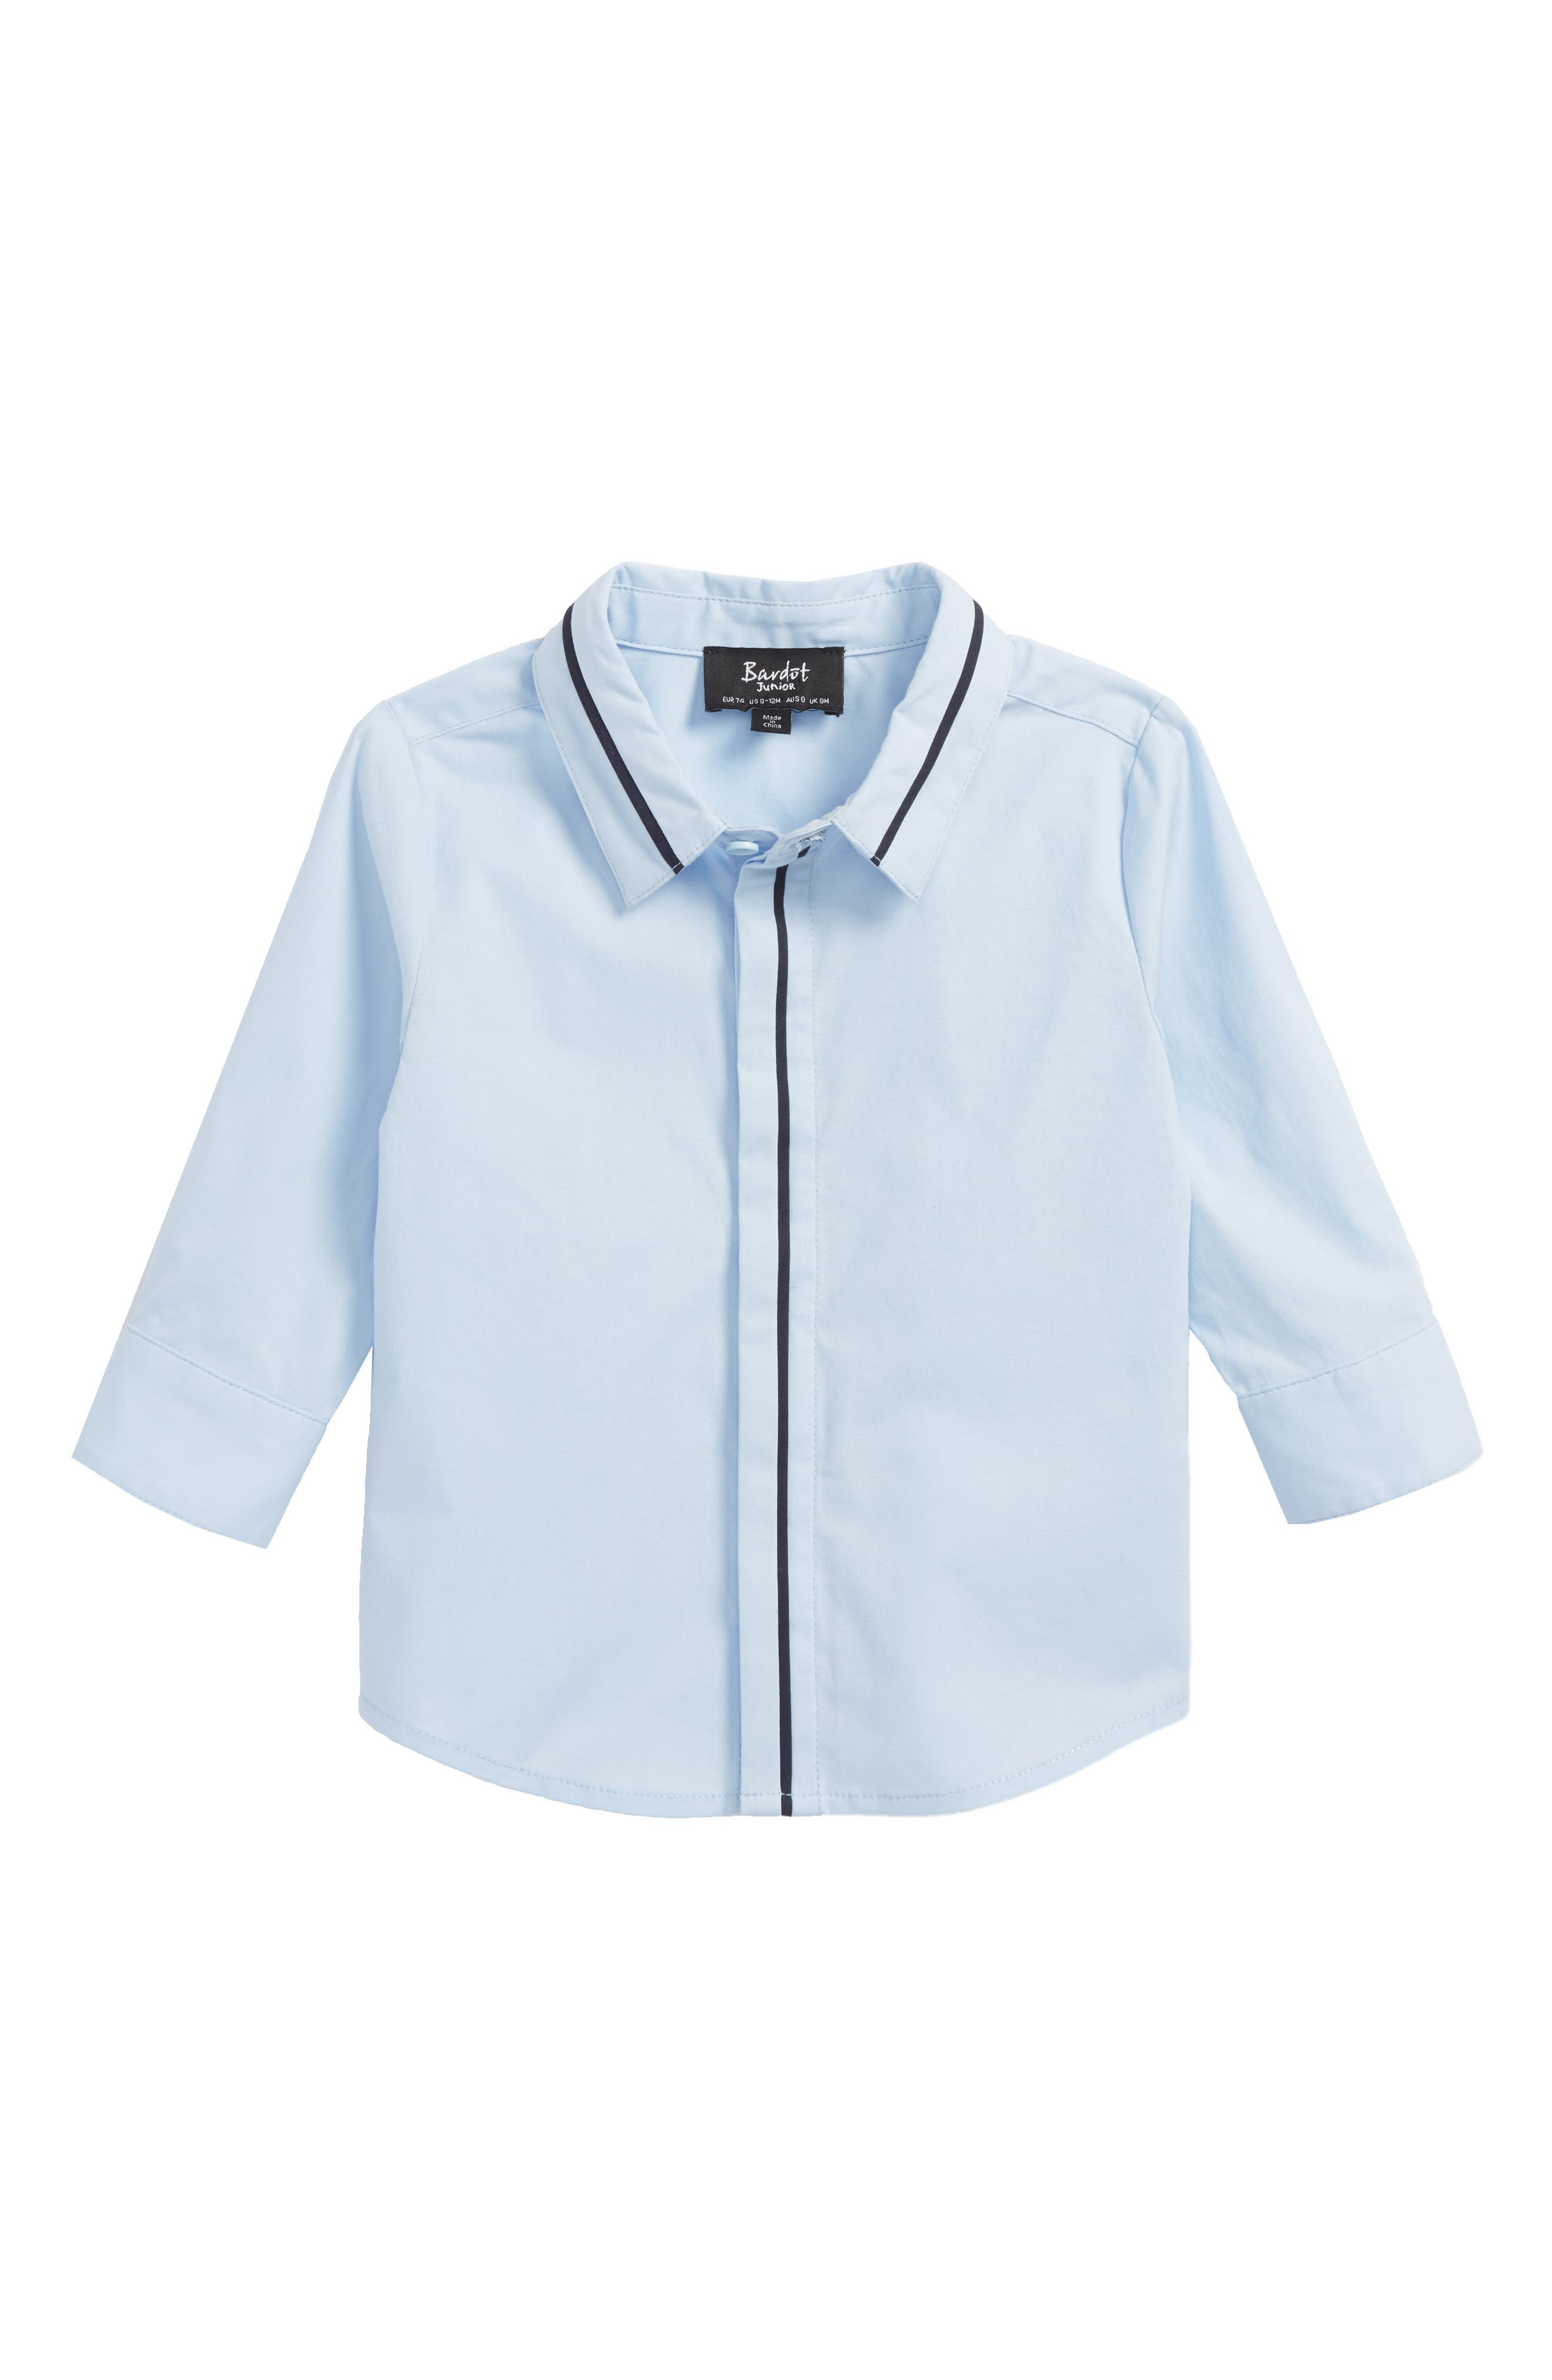 Linear Shirt,                         Main,                         color, Pale Blue